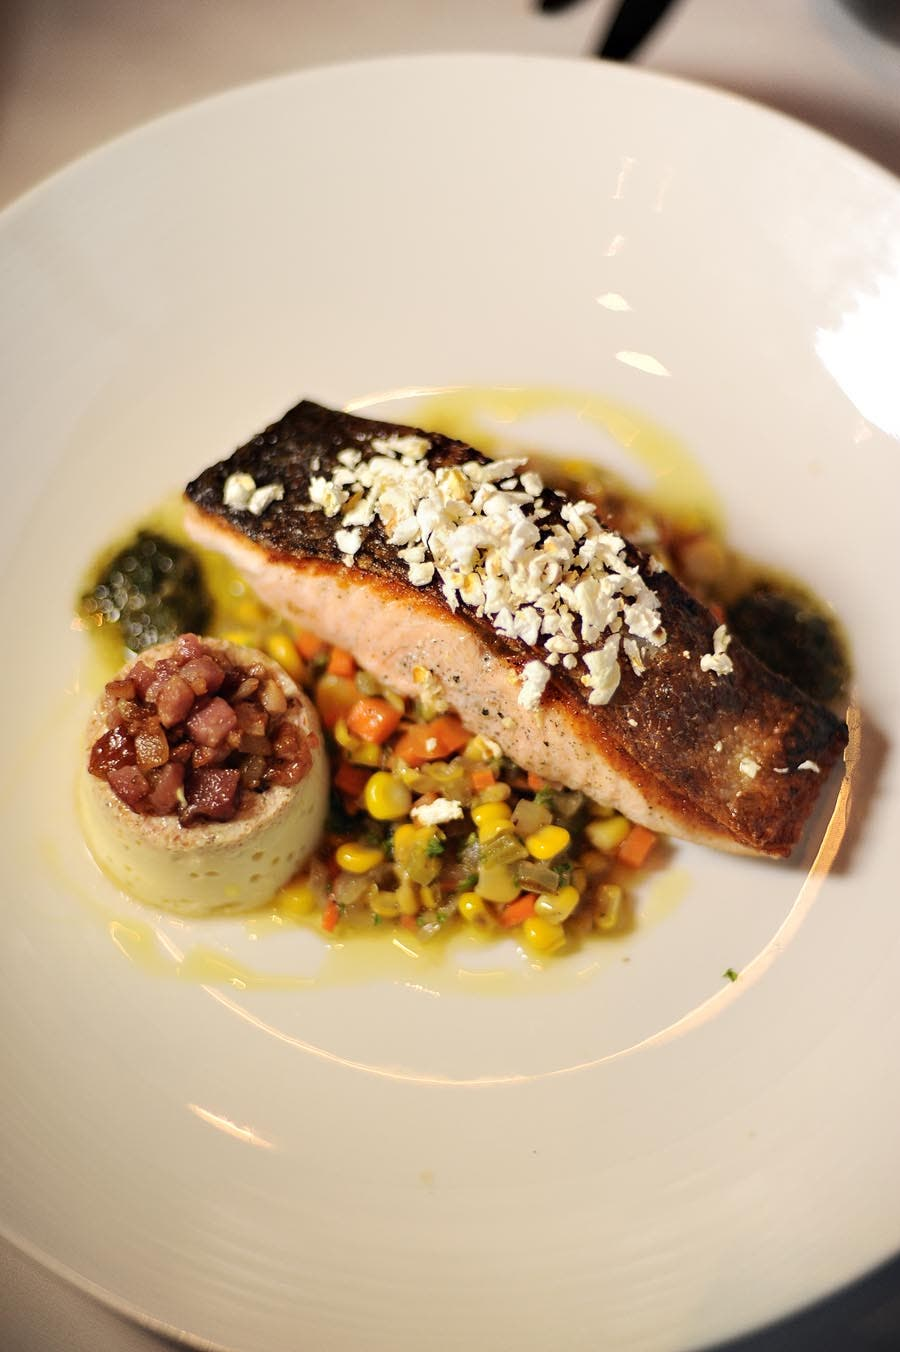 gramercy-71-makati-club-when-in-manila-fine-dining-affordable-dinner-chef-carlo-miguel-dinner-lounge--2a